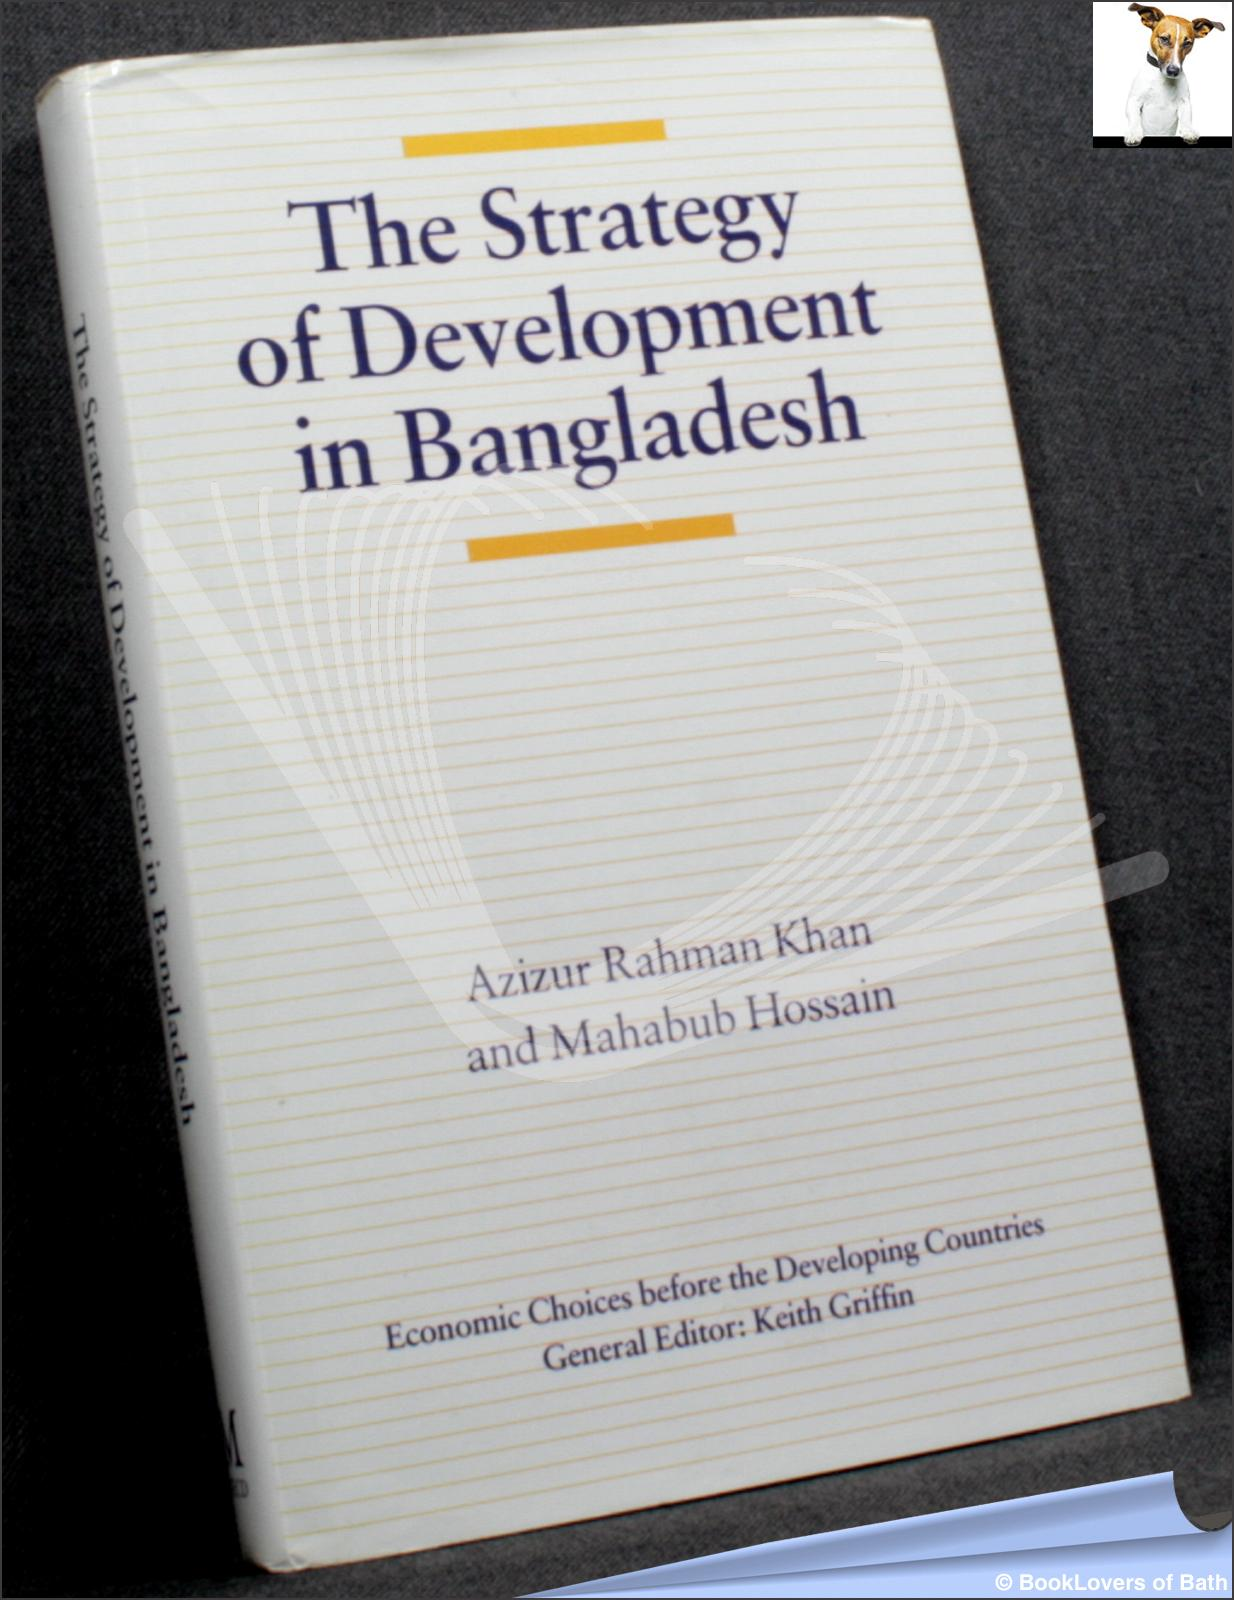 The Strategy of Development in Bangladesh - Azizur Kahman Khan & Mahabub Hossain